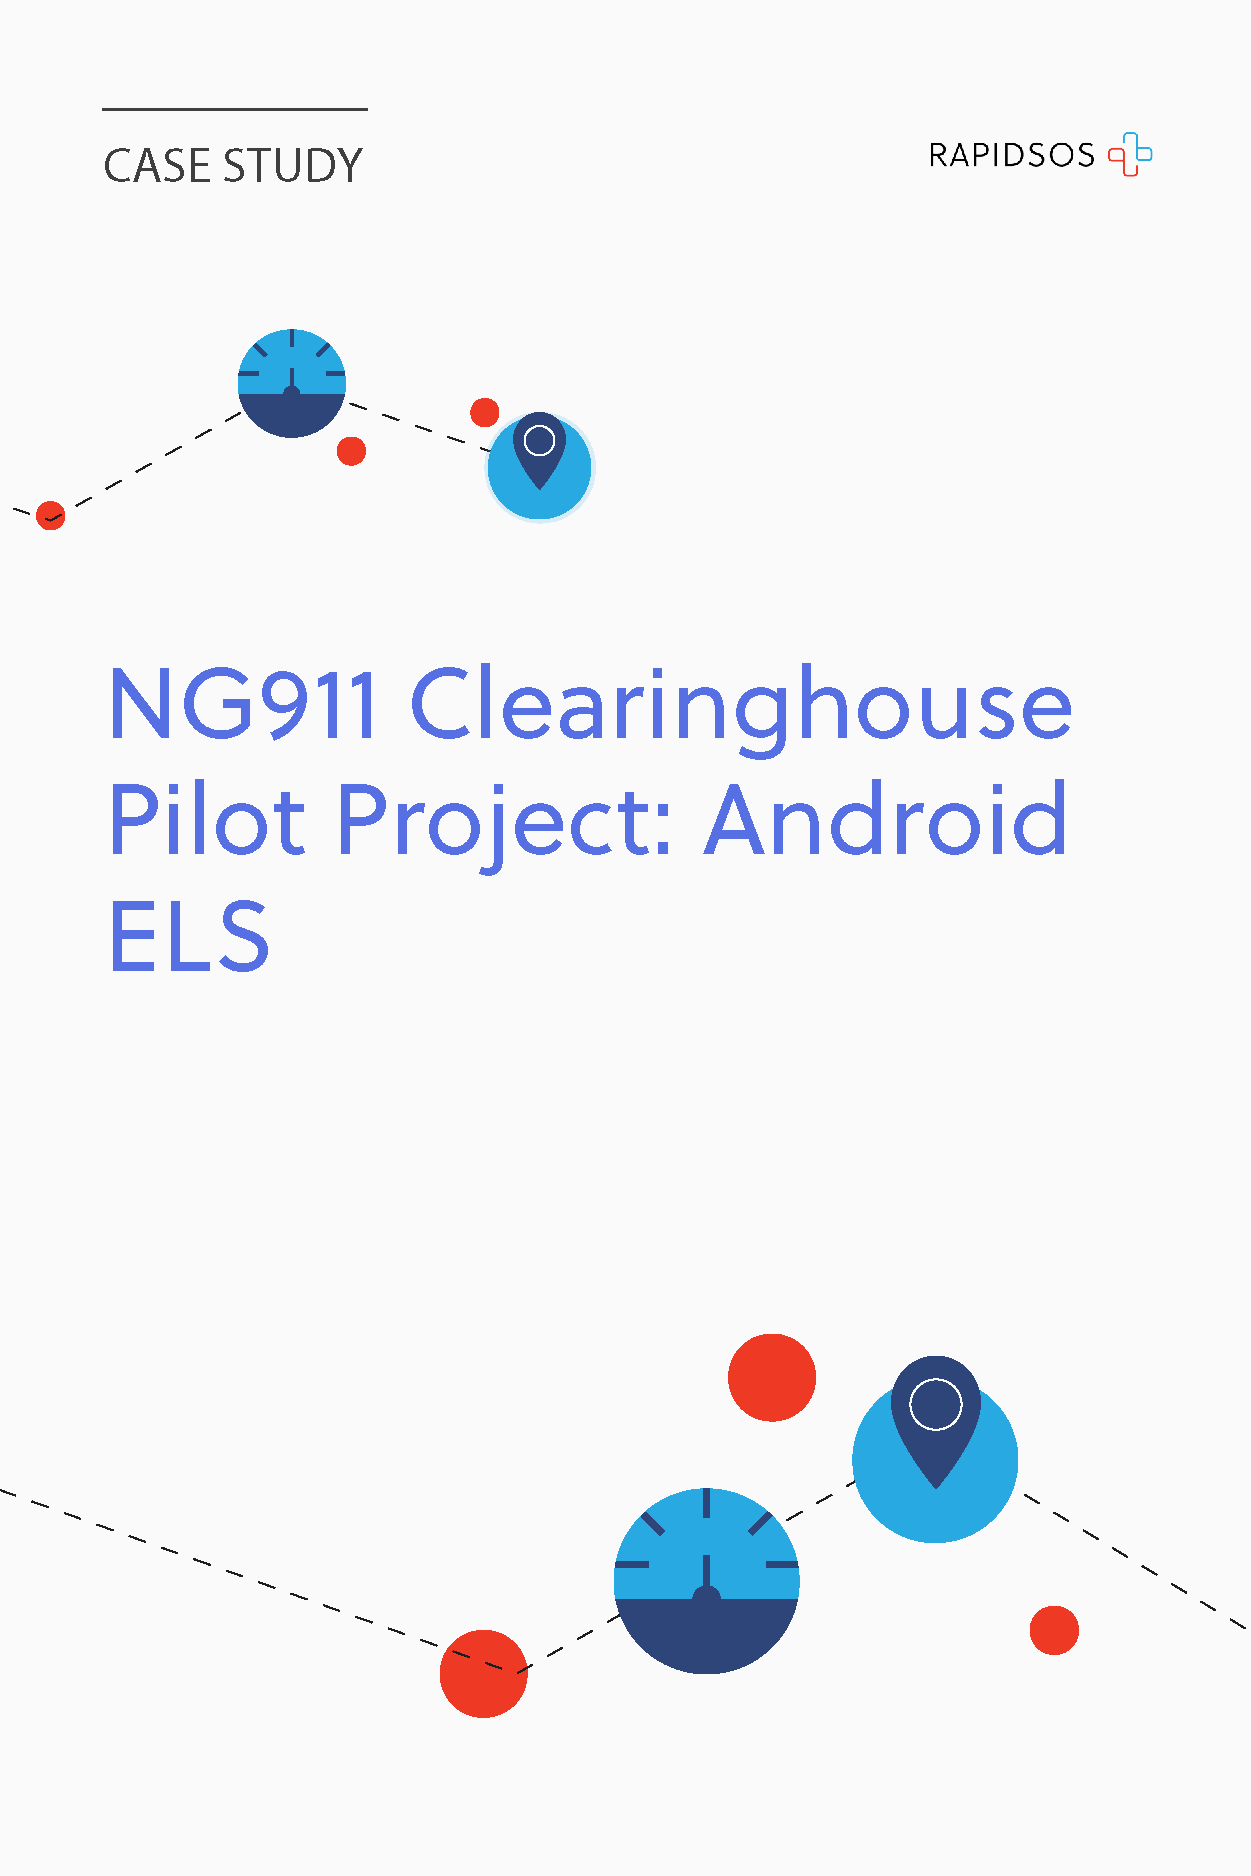 resource cover android els case study-03